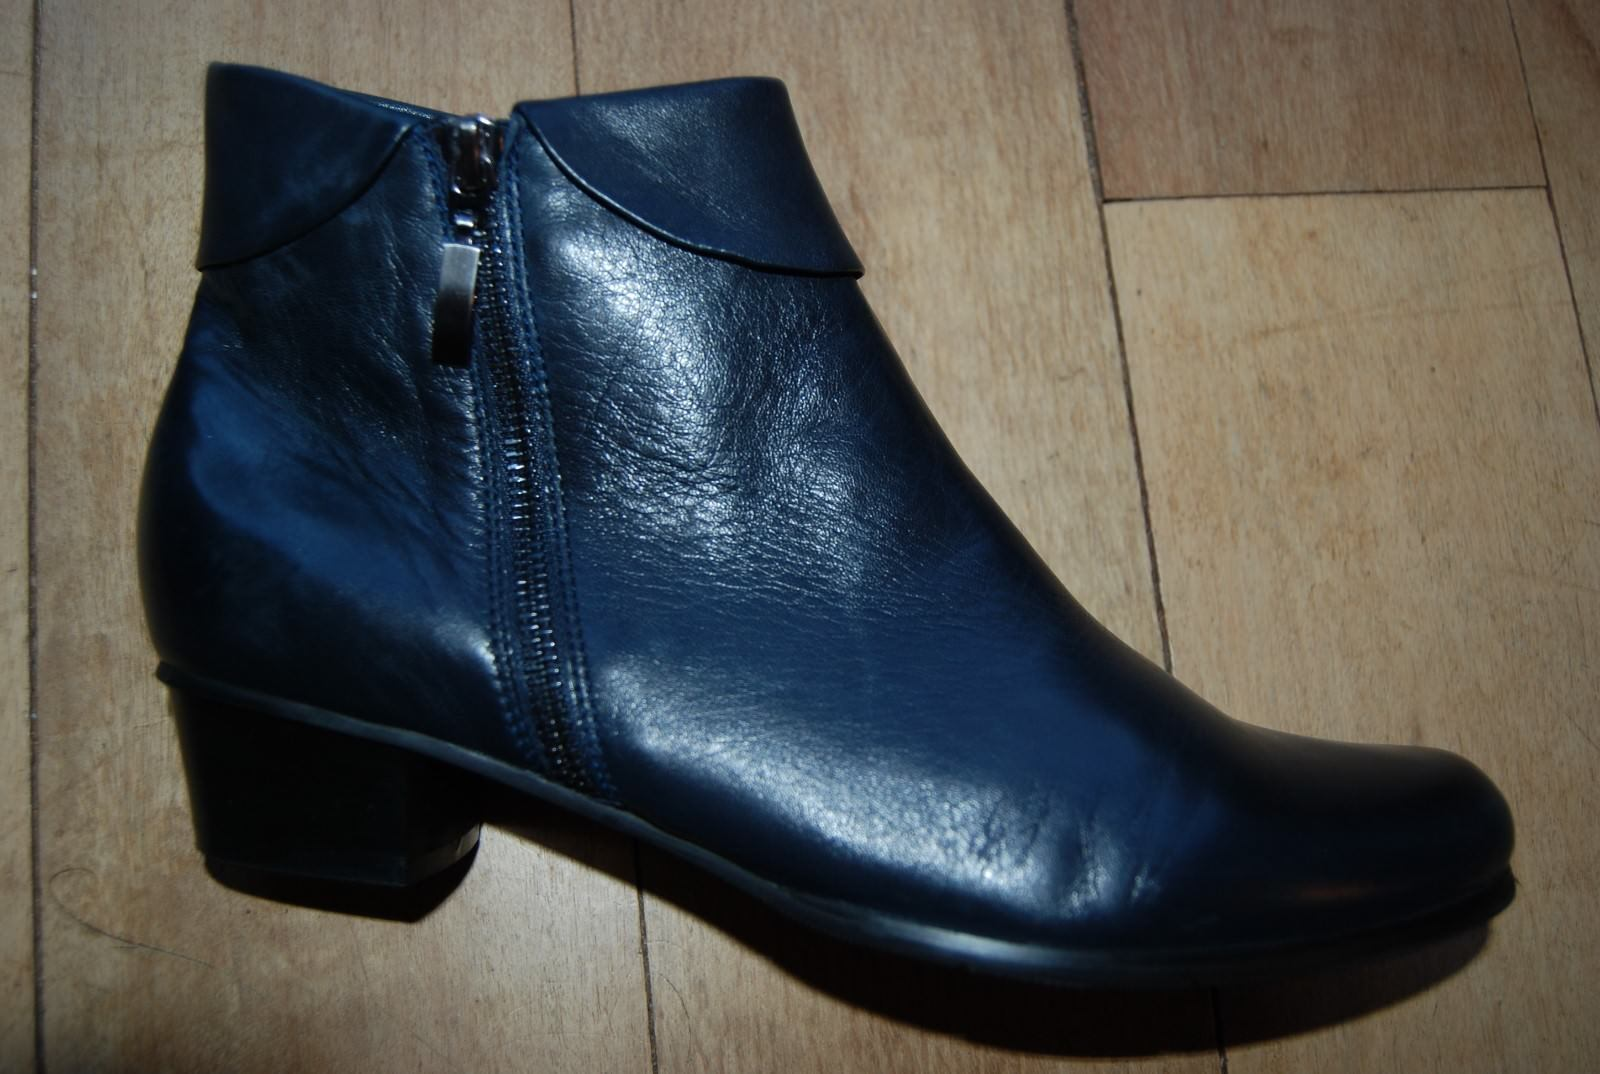 New Black Leather SPRING STEP Flapped Side Zip Ankle Boots US 9.5 - 10